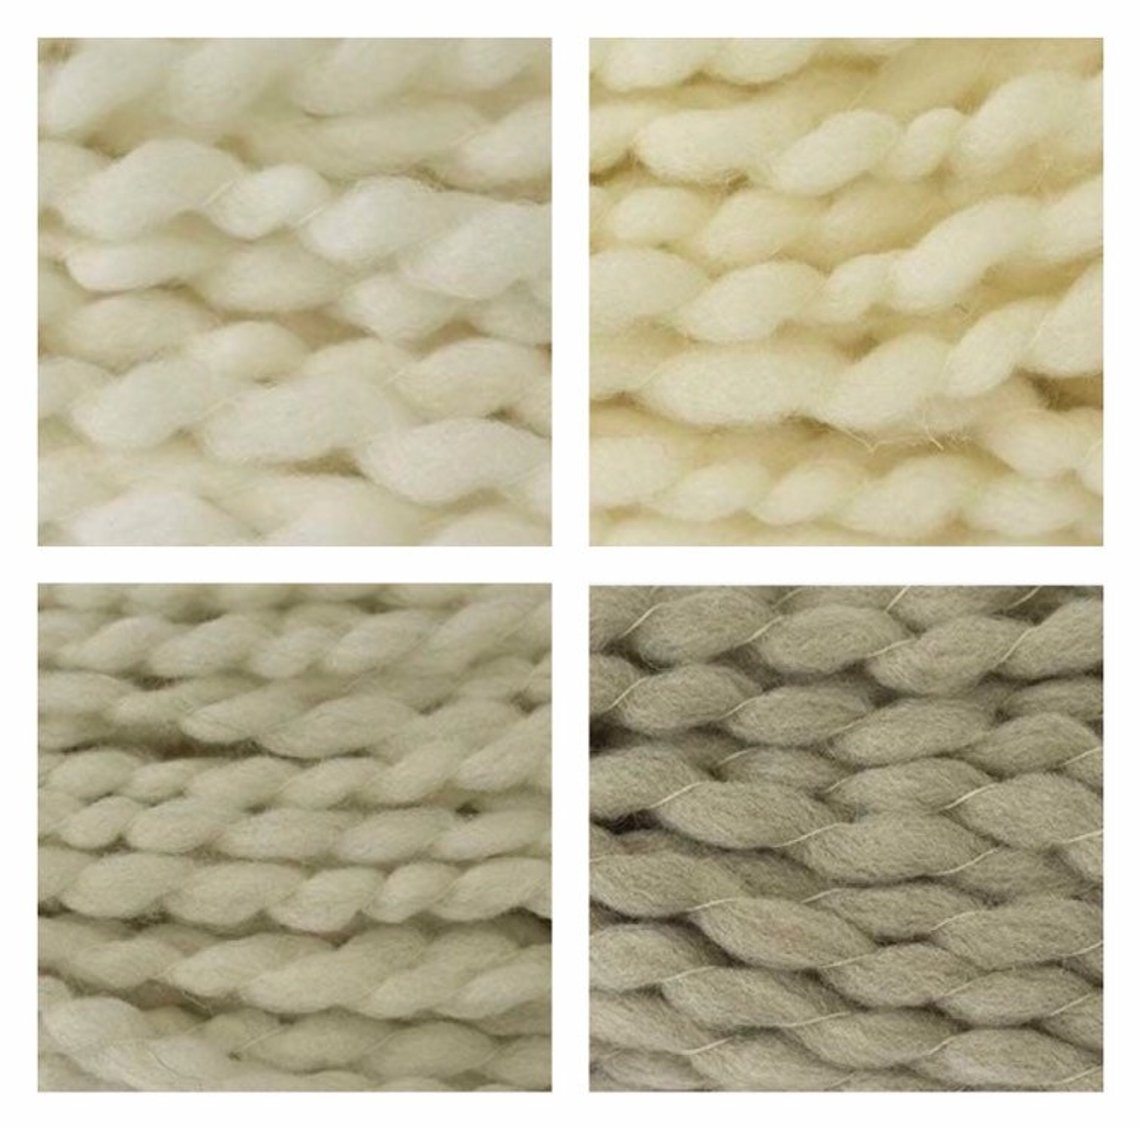 Natural dyed wool —Made to order wool sweater. Choose your palette for your new favorite wooly.